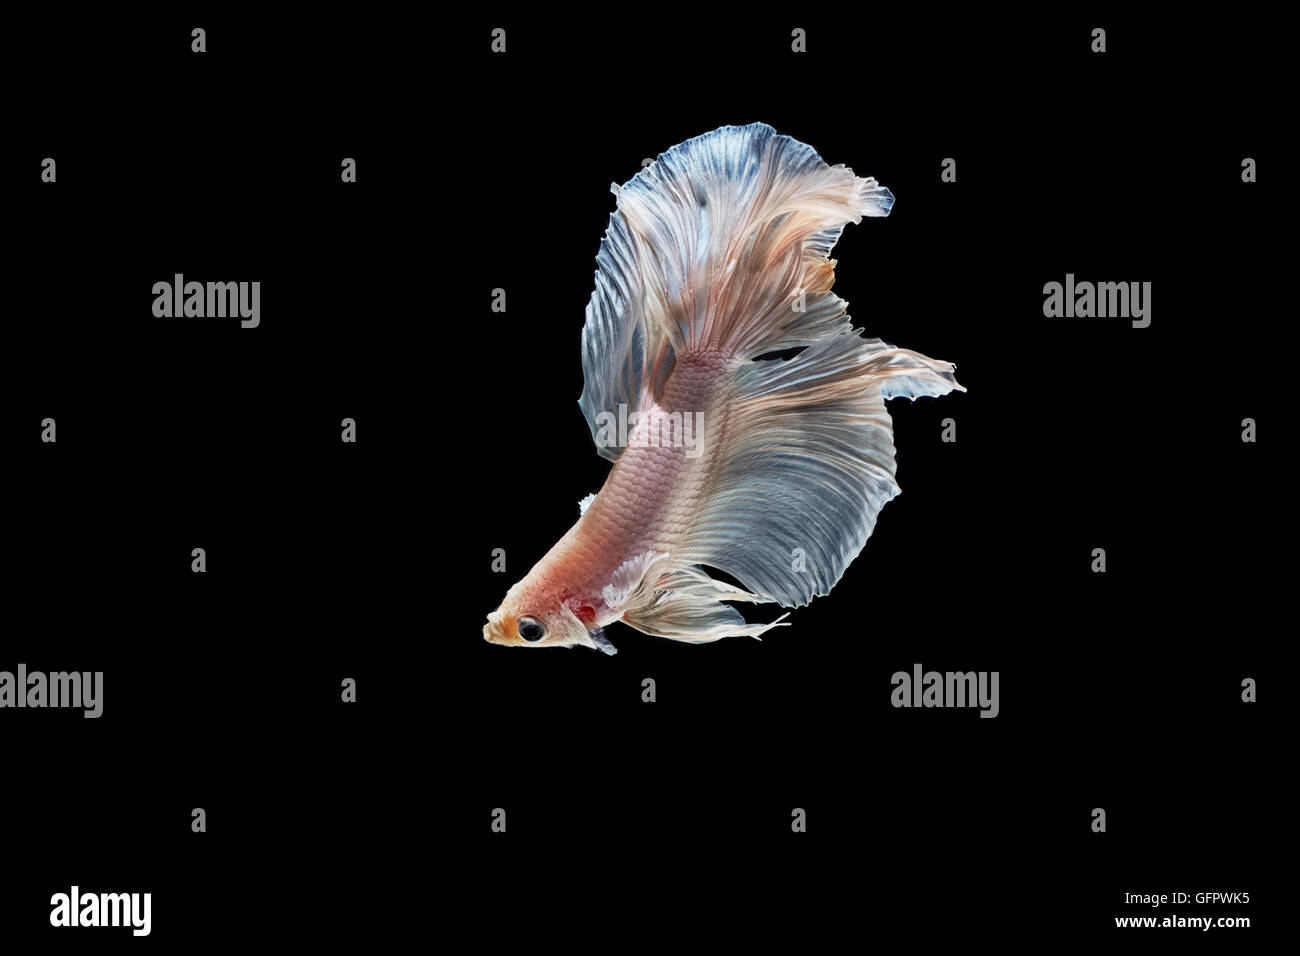 moving moment of white siamese fighting fish isolated on black background - Stock Image